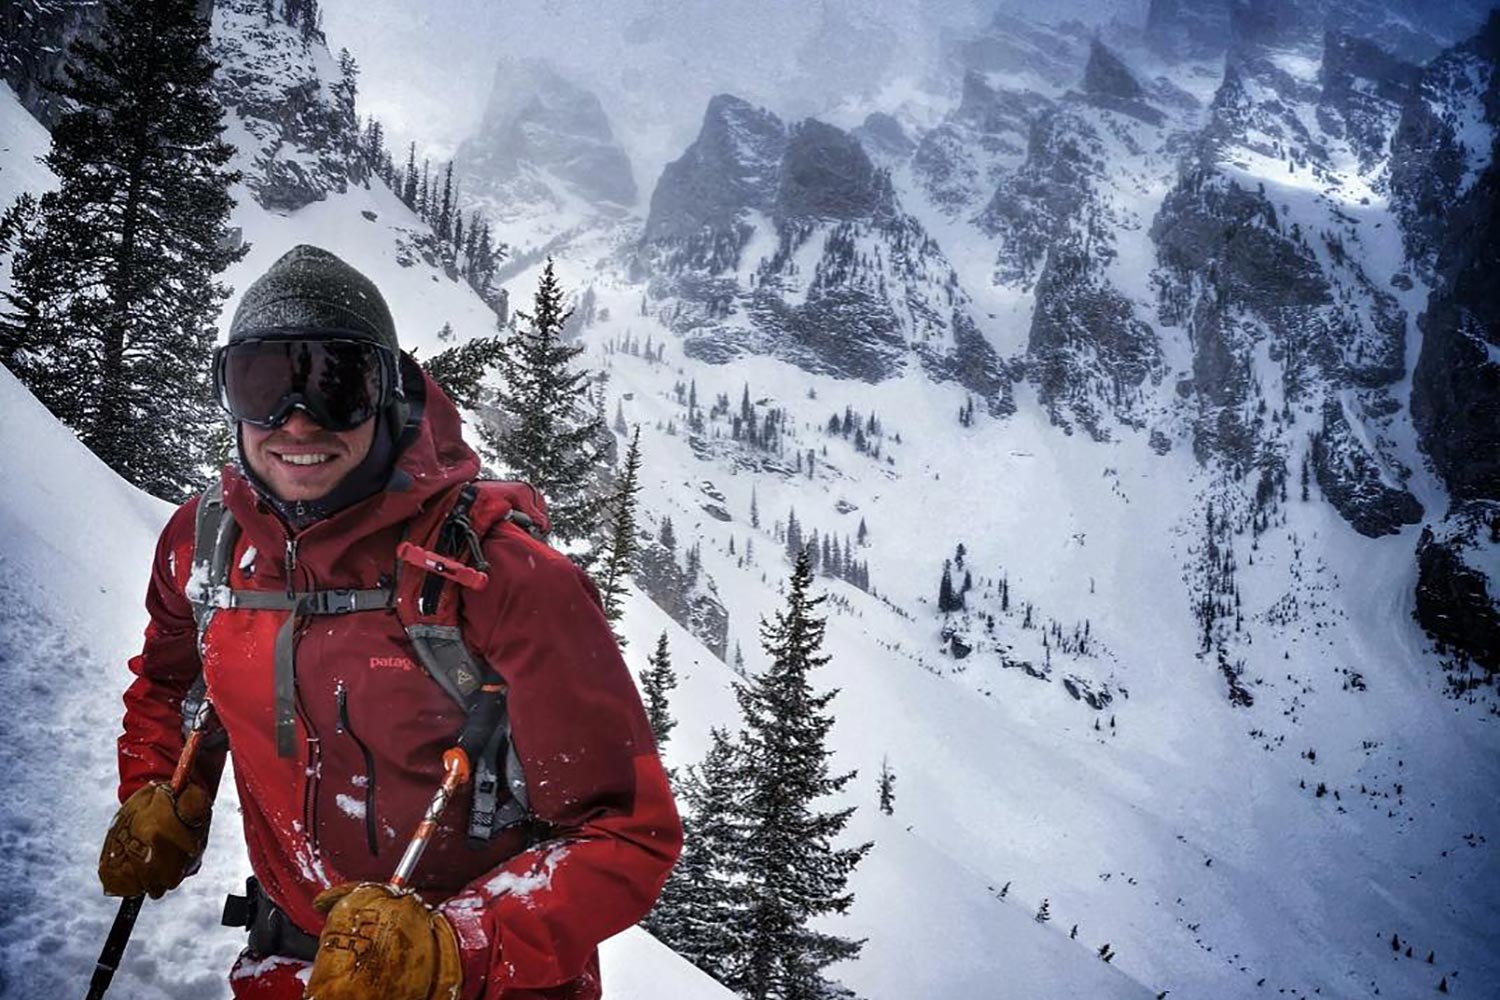 """When my own Alpine ski racing career came to an end after college, I wanted to give back to the sport that had given me so much,"" Zach Kuster said."